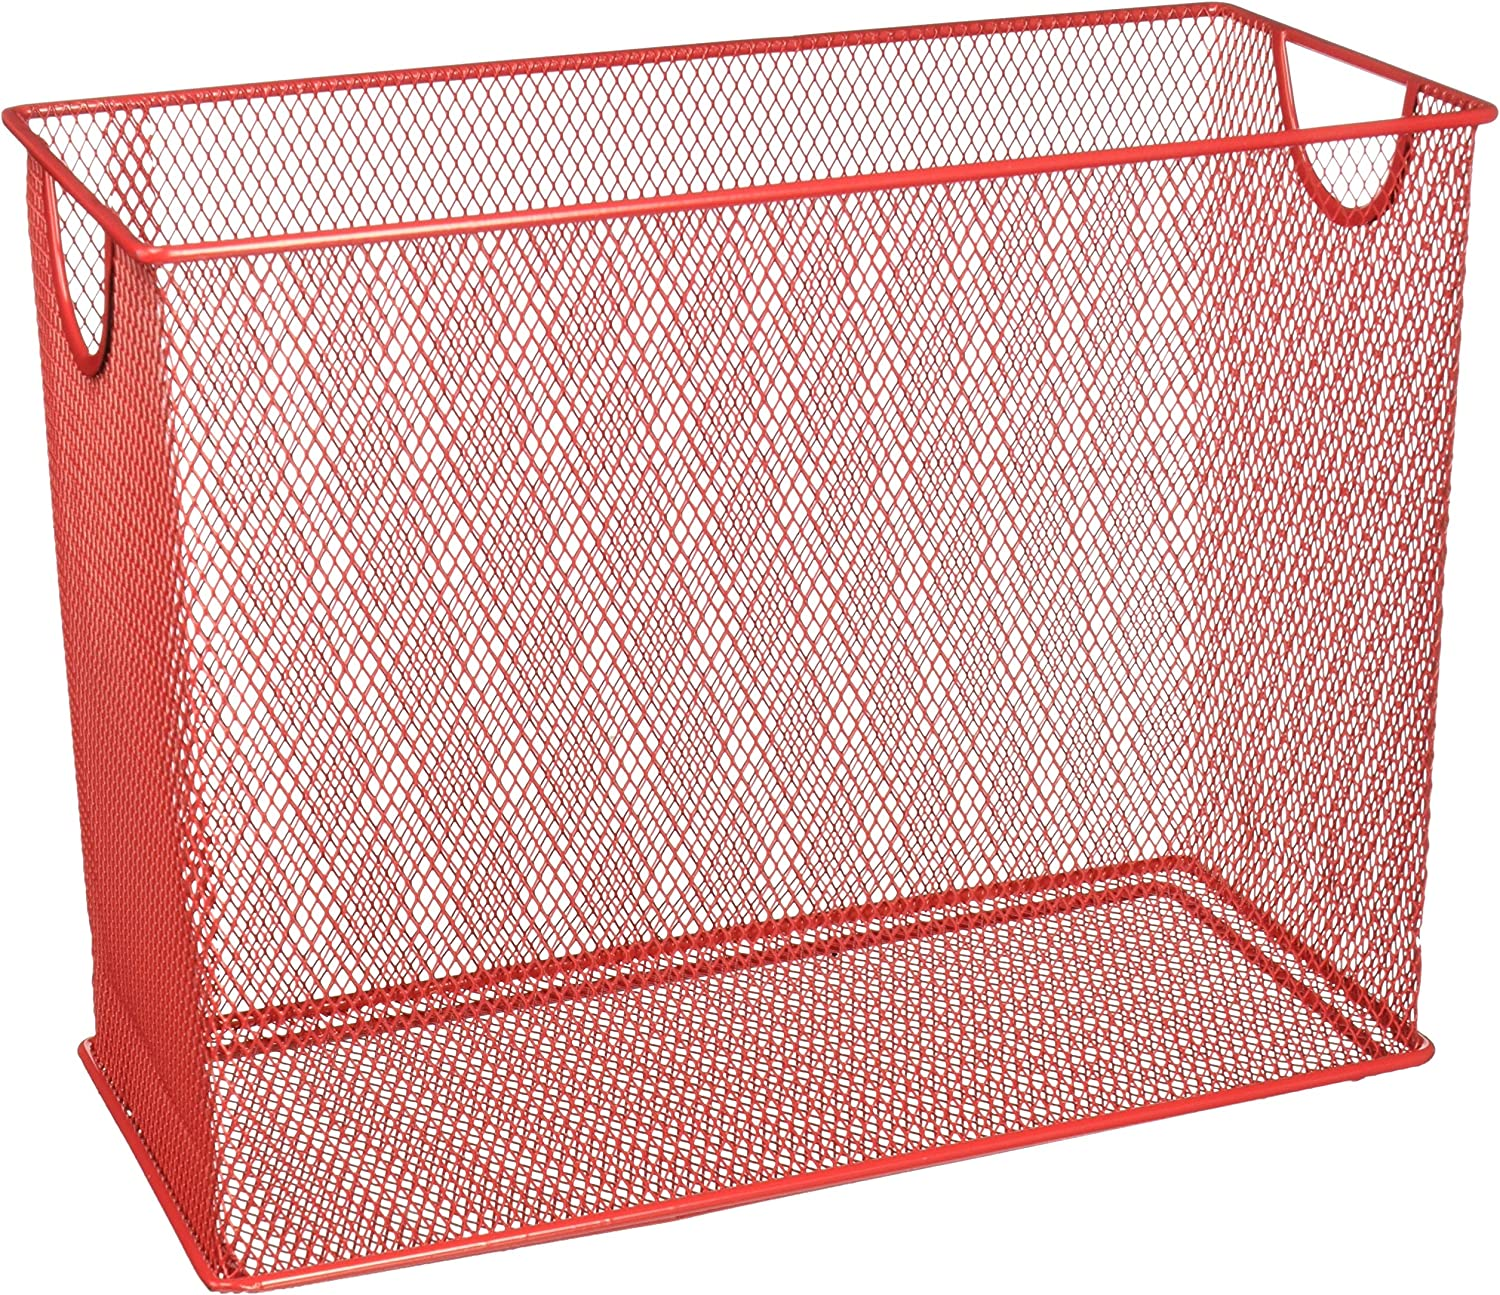 Honey-Can-Do OFC-04859 Mesh Table Top File, 5.5 x 12.5 x 9.87, Red